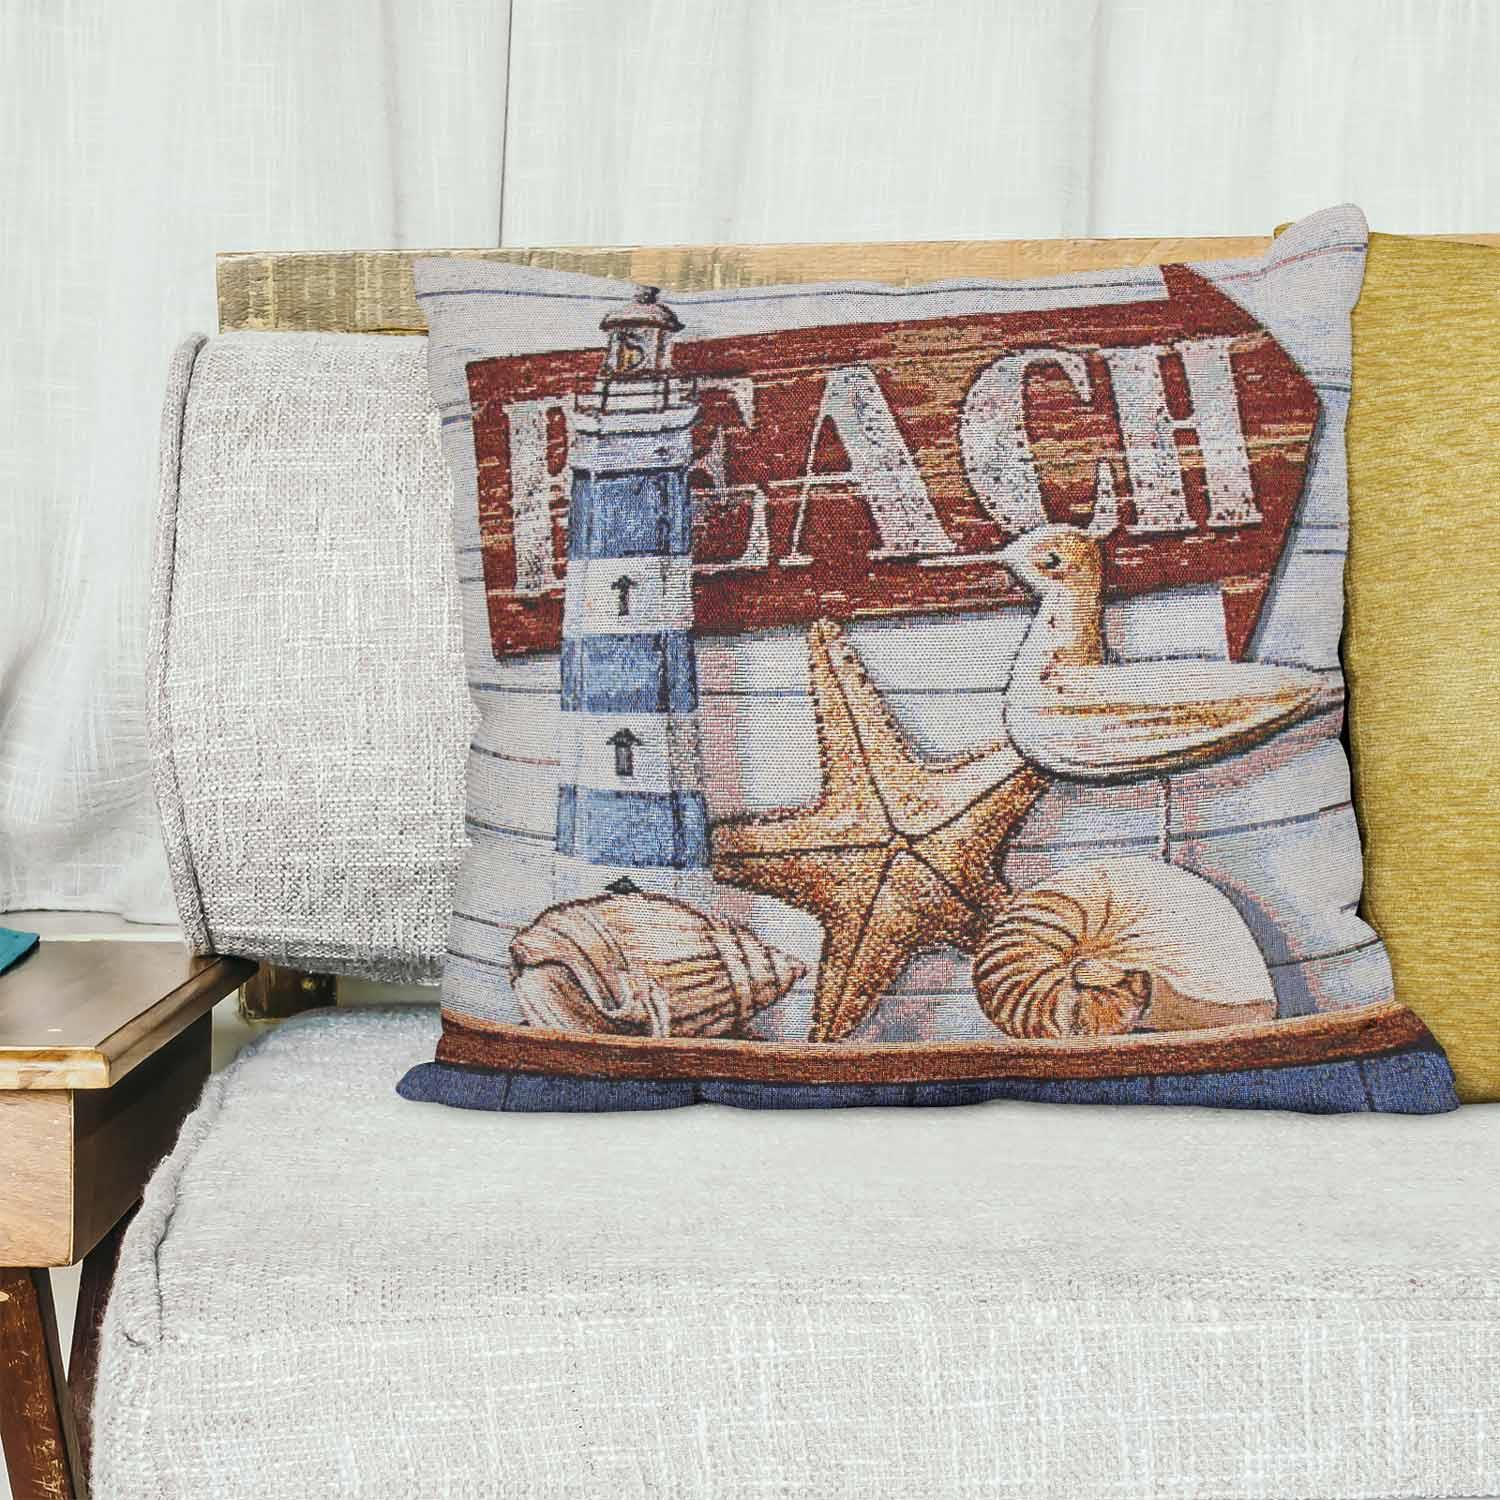 Tapestry-Cushion-Covers-Vintage-Pillow-Cover-Collection-18-034-45cm-Filled-Cushions thumbnail 11